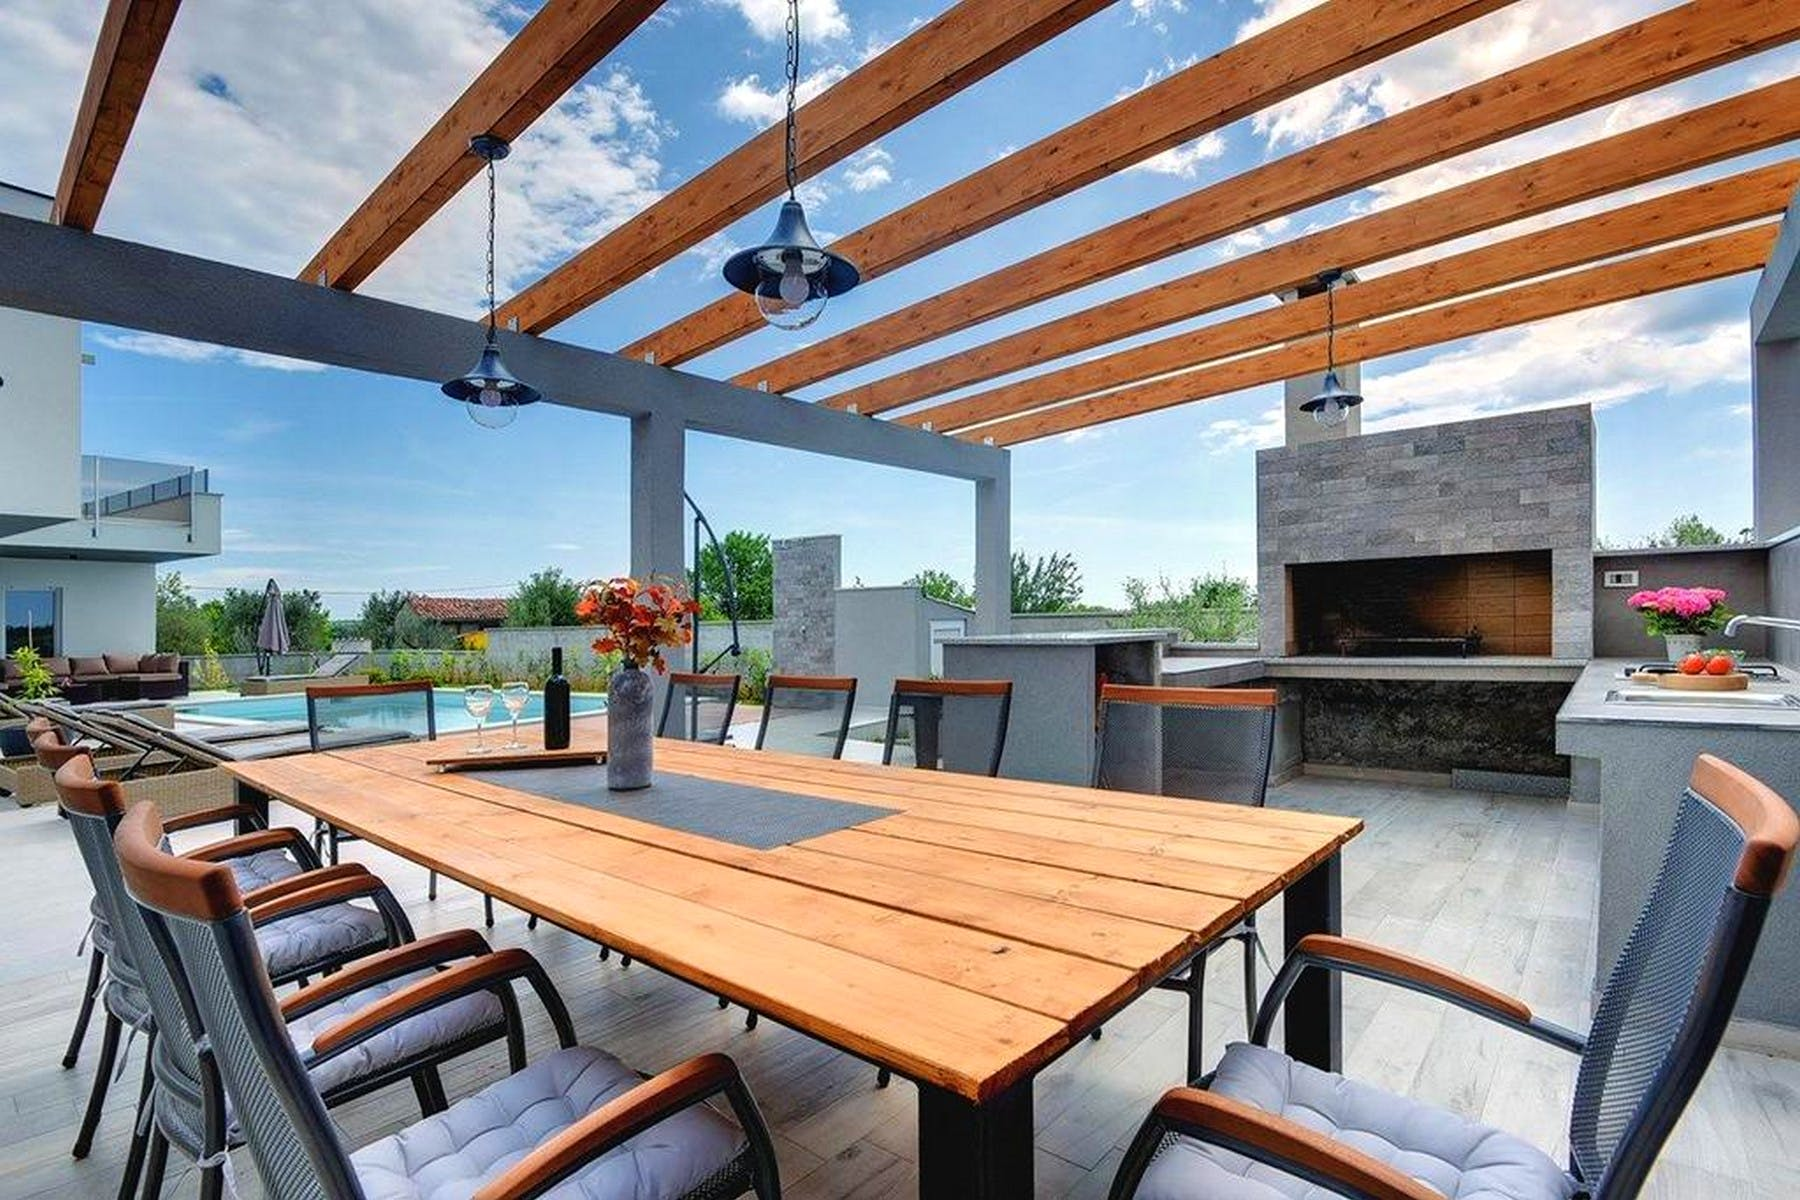 Outside dining area and summer kitchen